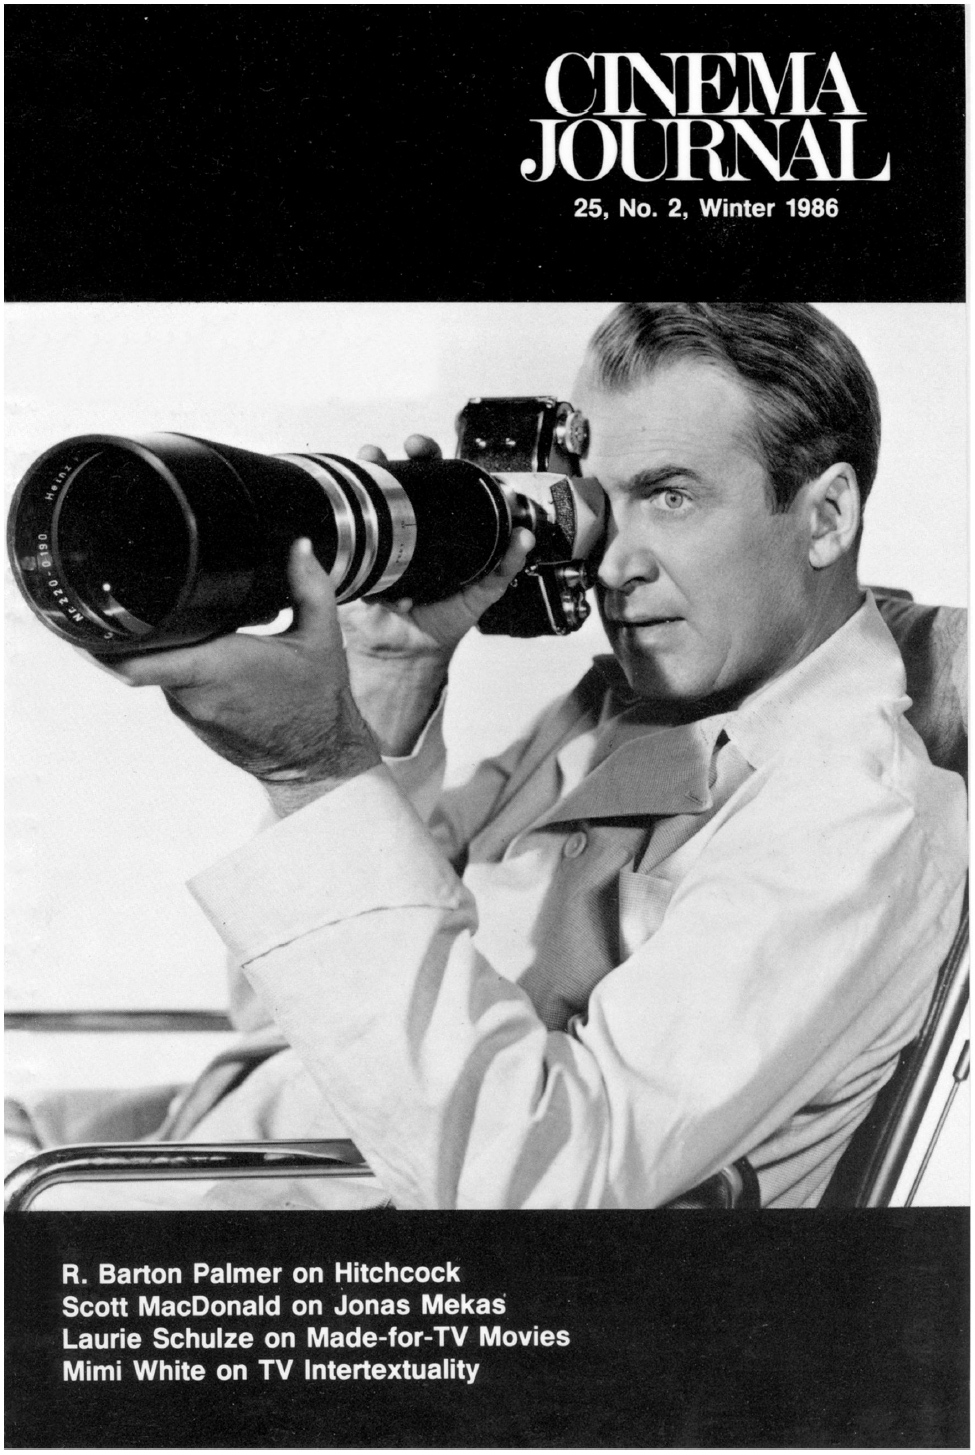 Journal Cover - Title in white lettering above a black and white photograph of a man looking through a camera with a very long lens against a black background.